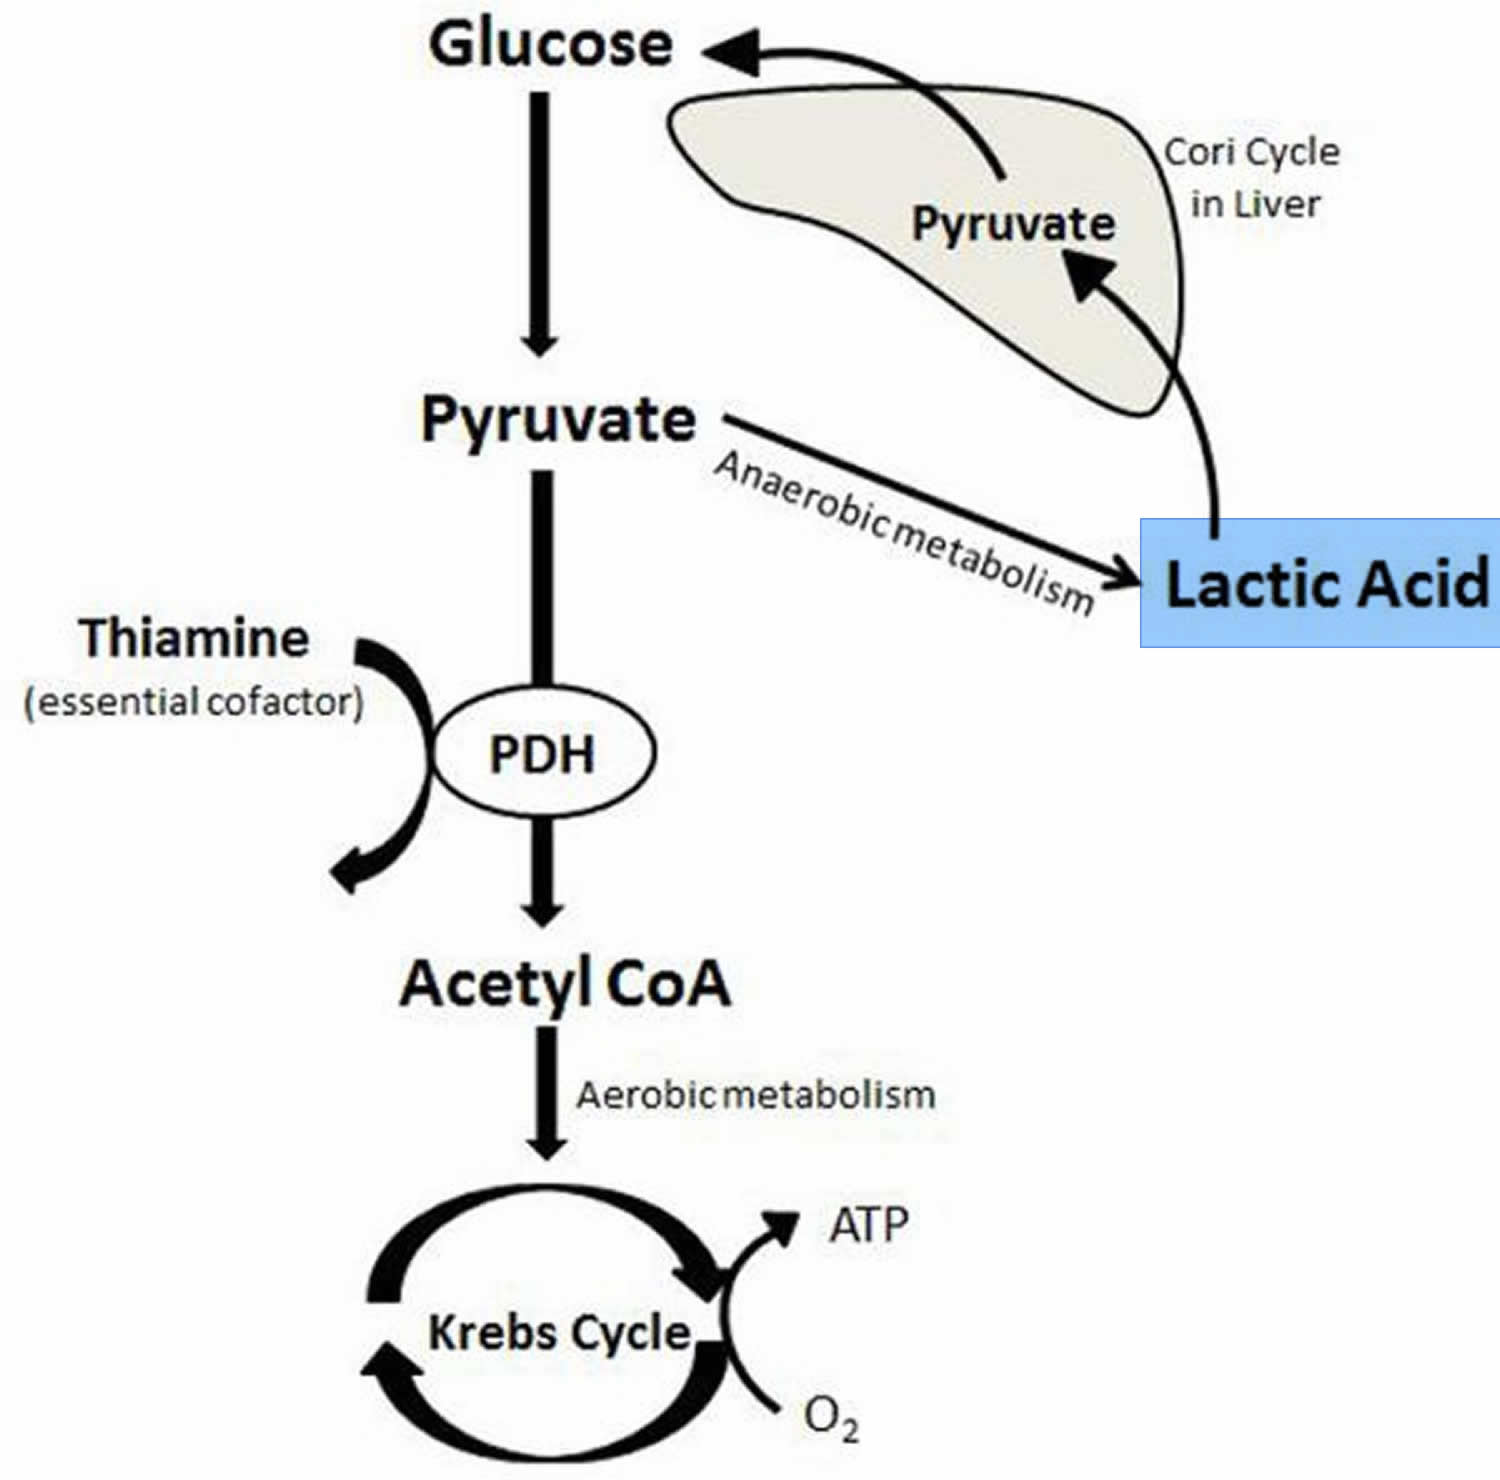 Lactic acid production and metabolism